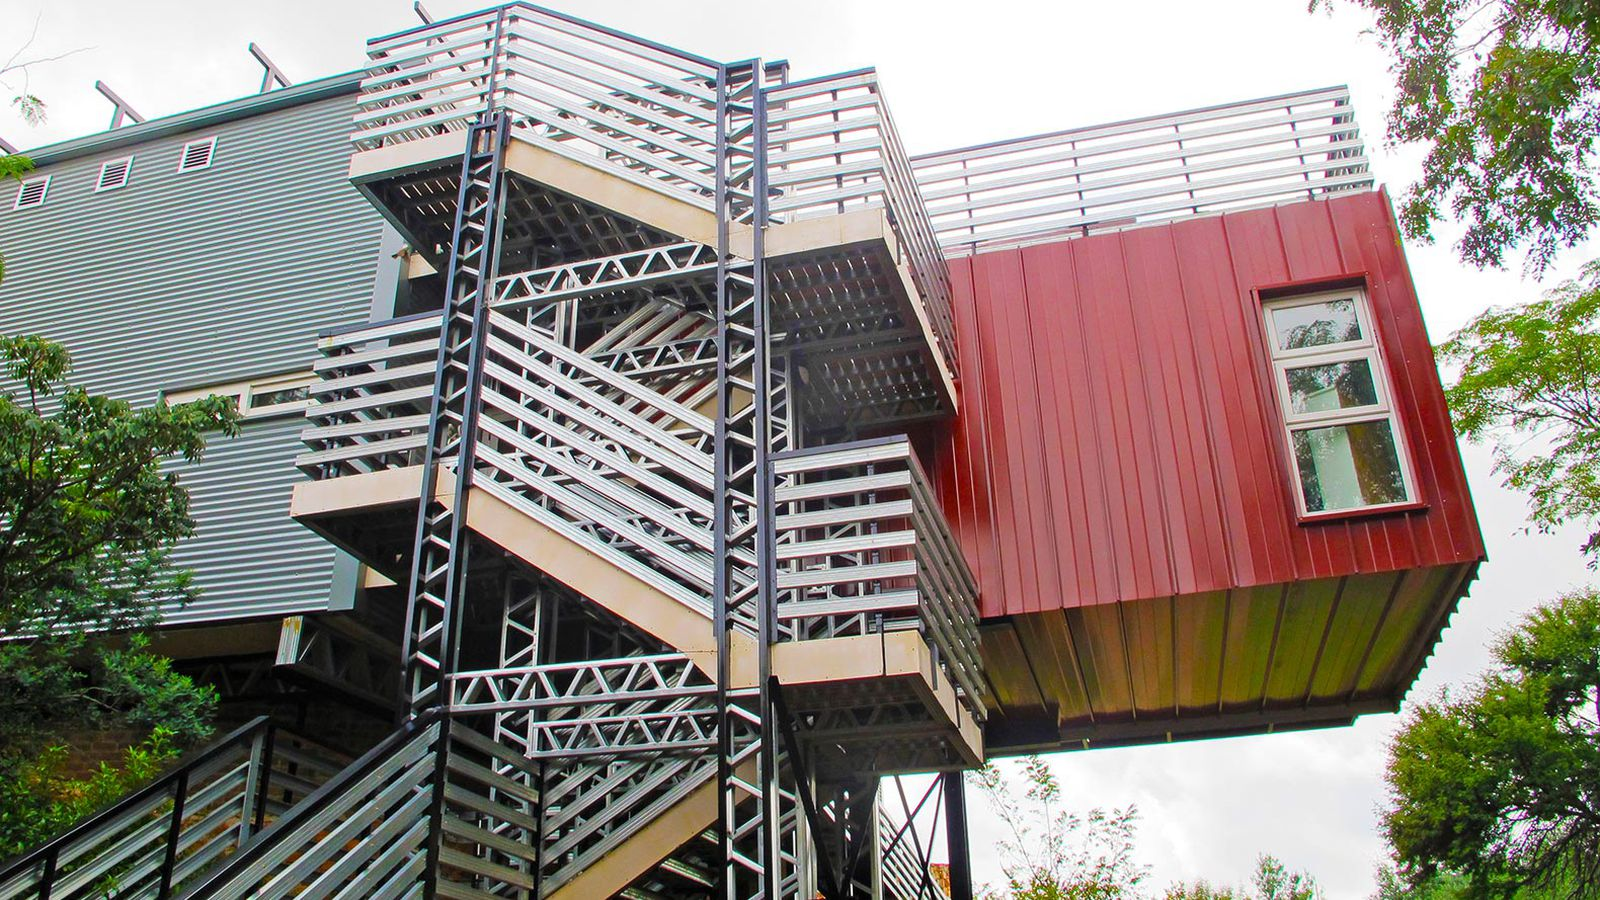 Shipping containers repurposed for off grid home in south africa curbed - Shipping container homes chicago ...